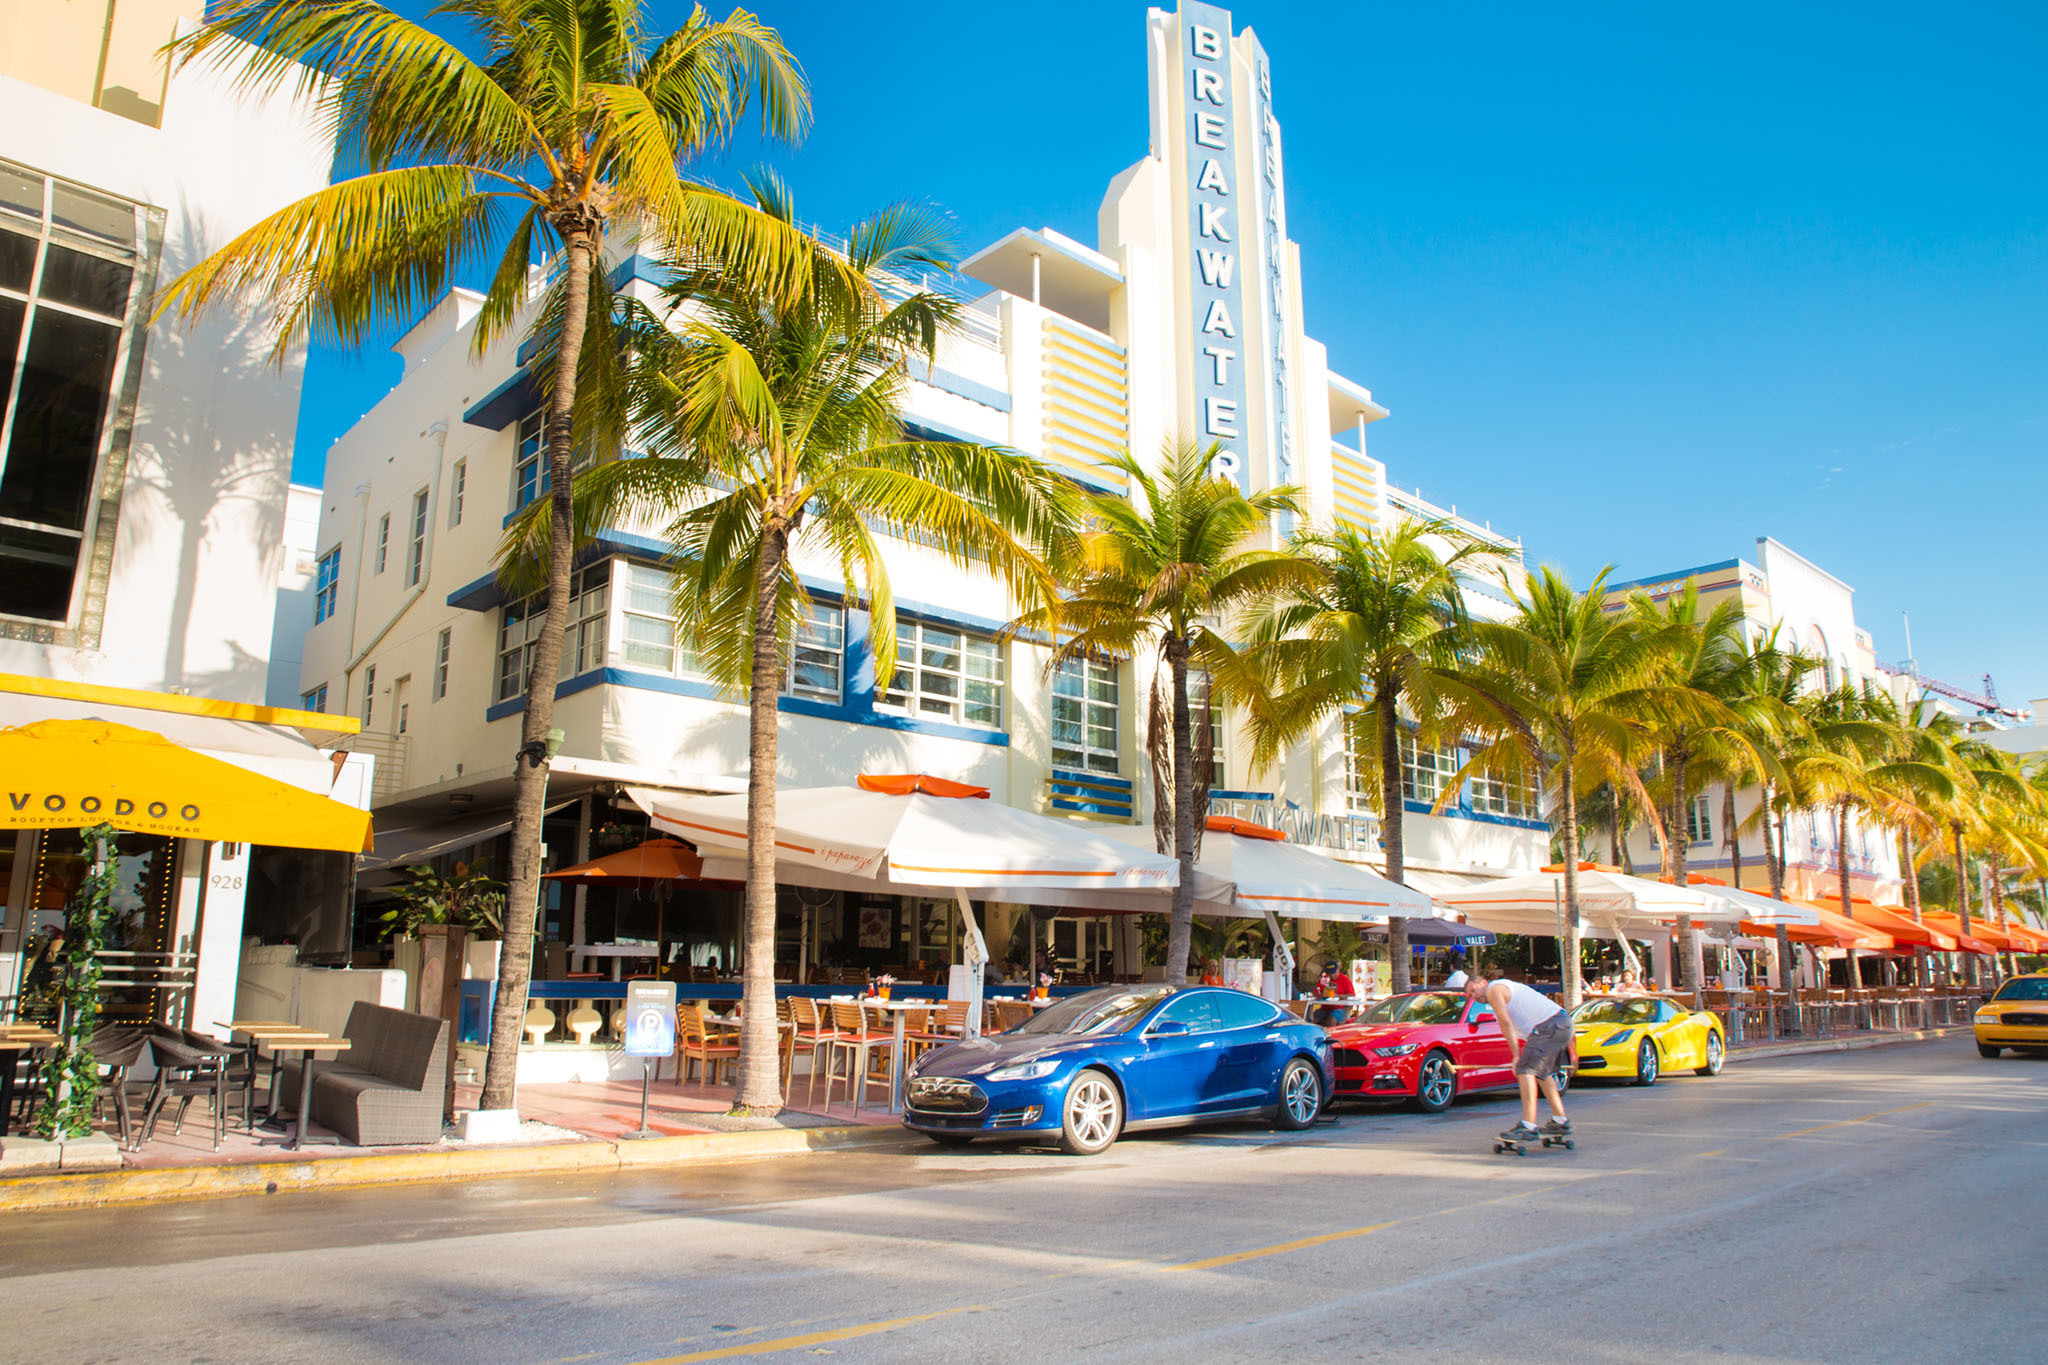 Things To Do In Downtown Miami Time Out Miami  Miami Events Attractions & Things To Do